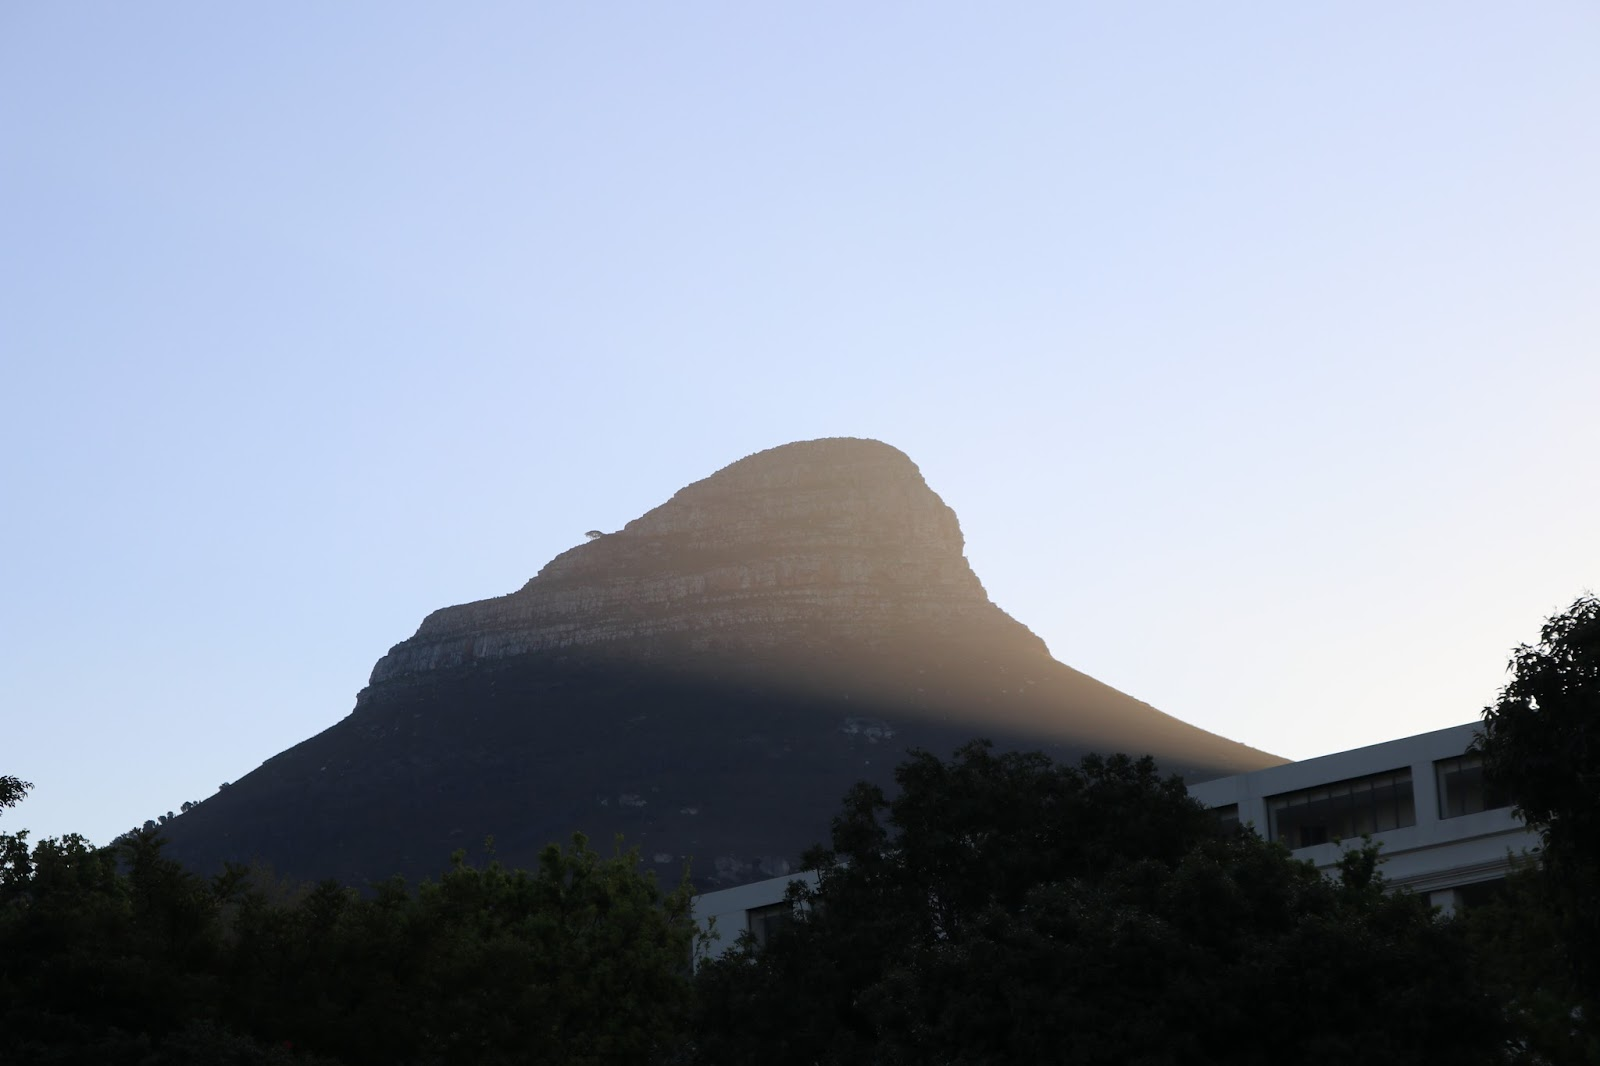 Lions Head Mountain, Cape Town, South Africa